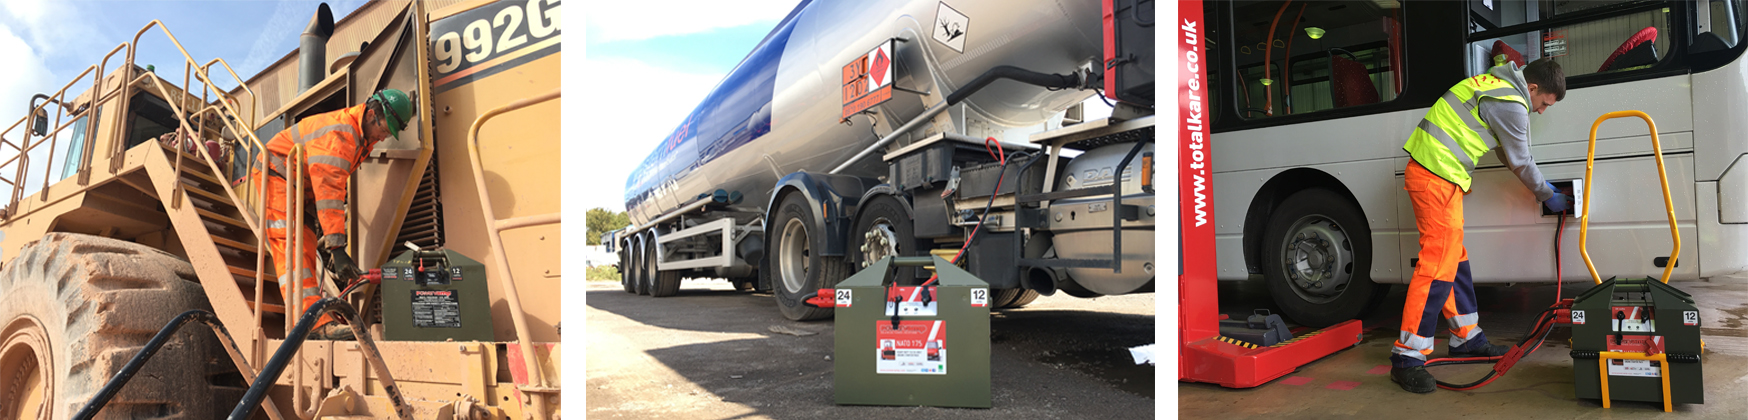 Nato 200 is currently used in plant, commercial and transport industries